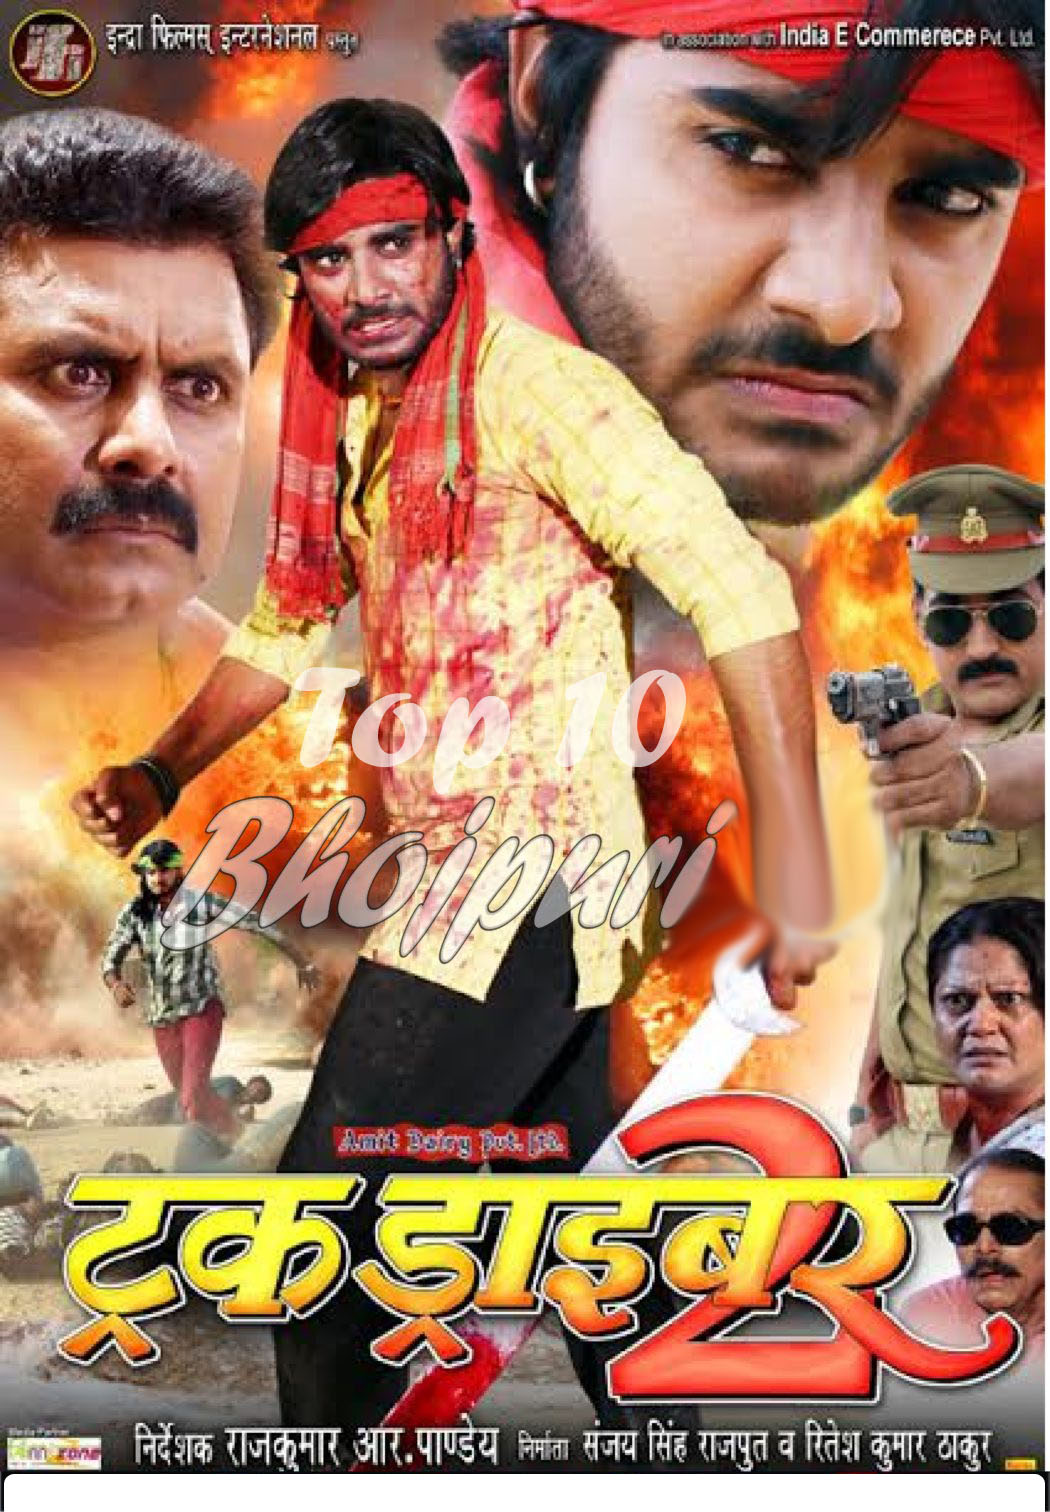 First look Poster Of Bhojpuri Movie Track Driver 2 Feat Pradeep Pandey 'Chintu', Ritesh Pandey Latest movie wallpaper, Photos